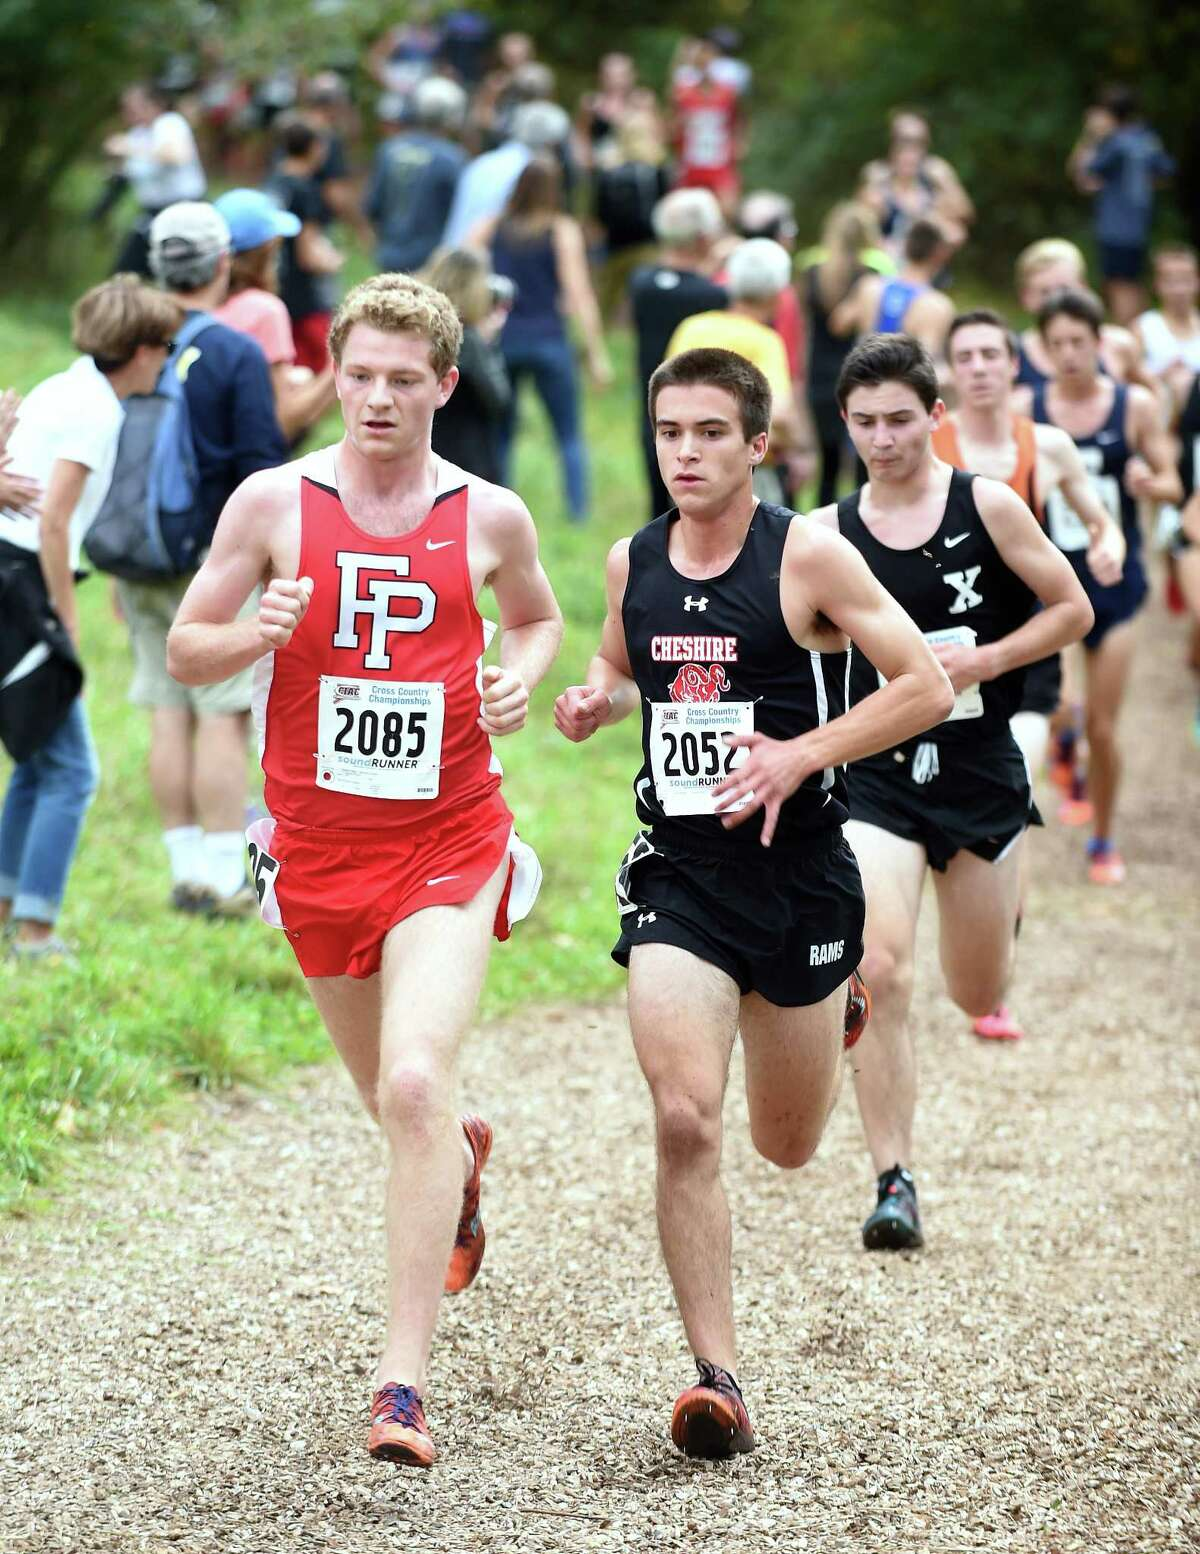 Drew Thompson (left) of Fairfield Prep and Brendan Murrary of Cheshire stay close during the 2017 CIAC Fall Championship Boys Cross Country race in Manchester on November 3, 2017.